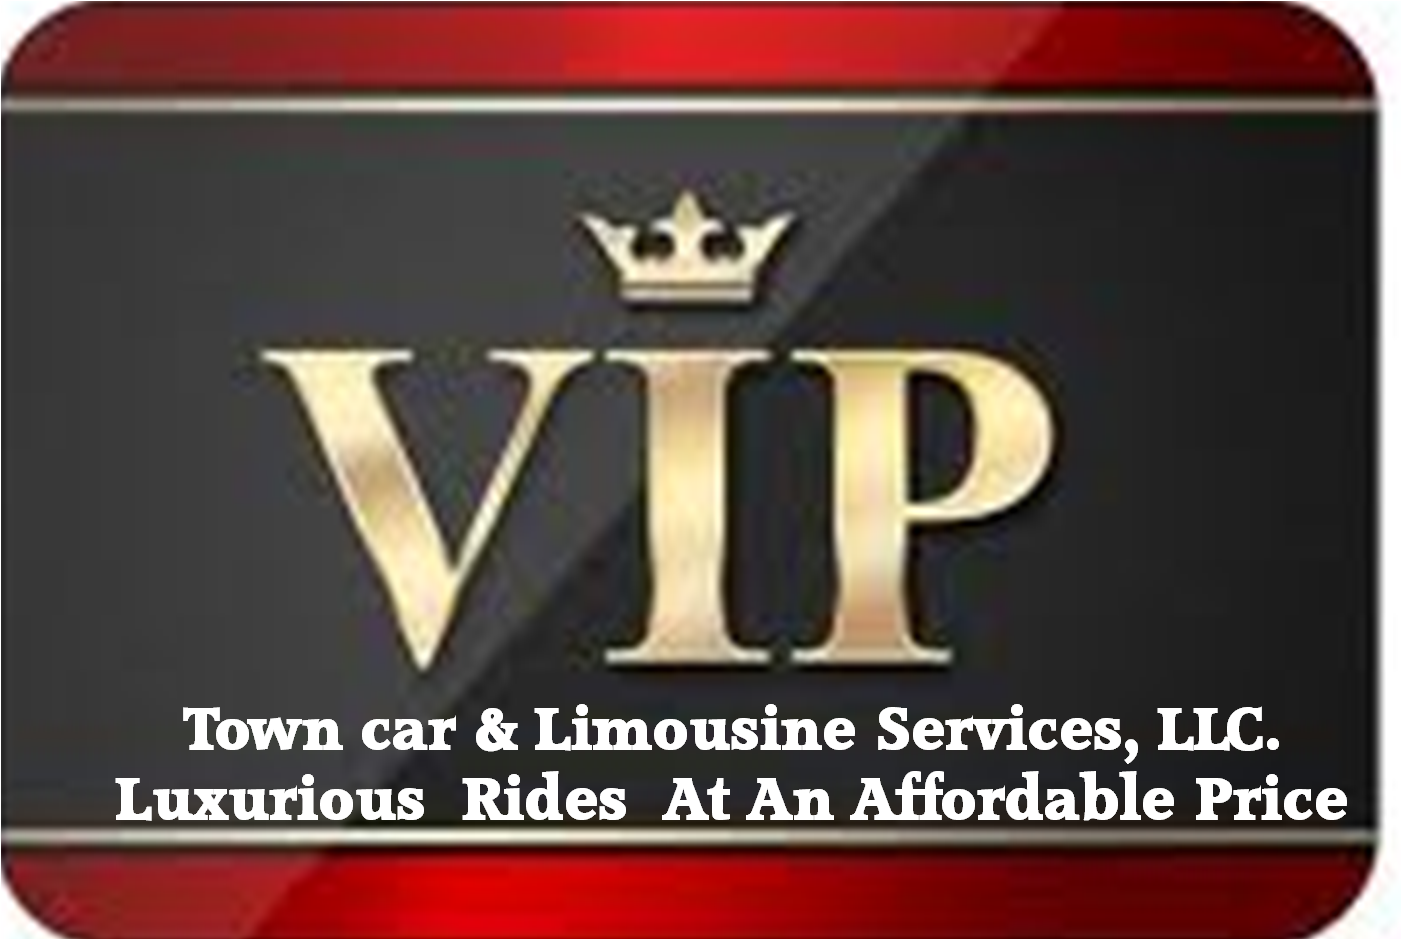 limo rental Houston, town car service Houston, houston limo service, houston car service, houston town car service, limo service houston tx